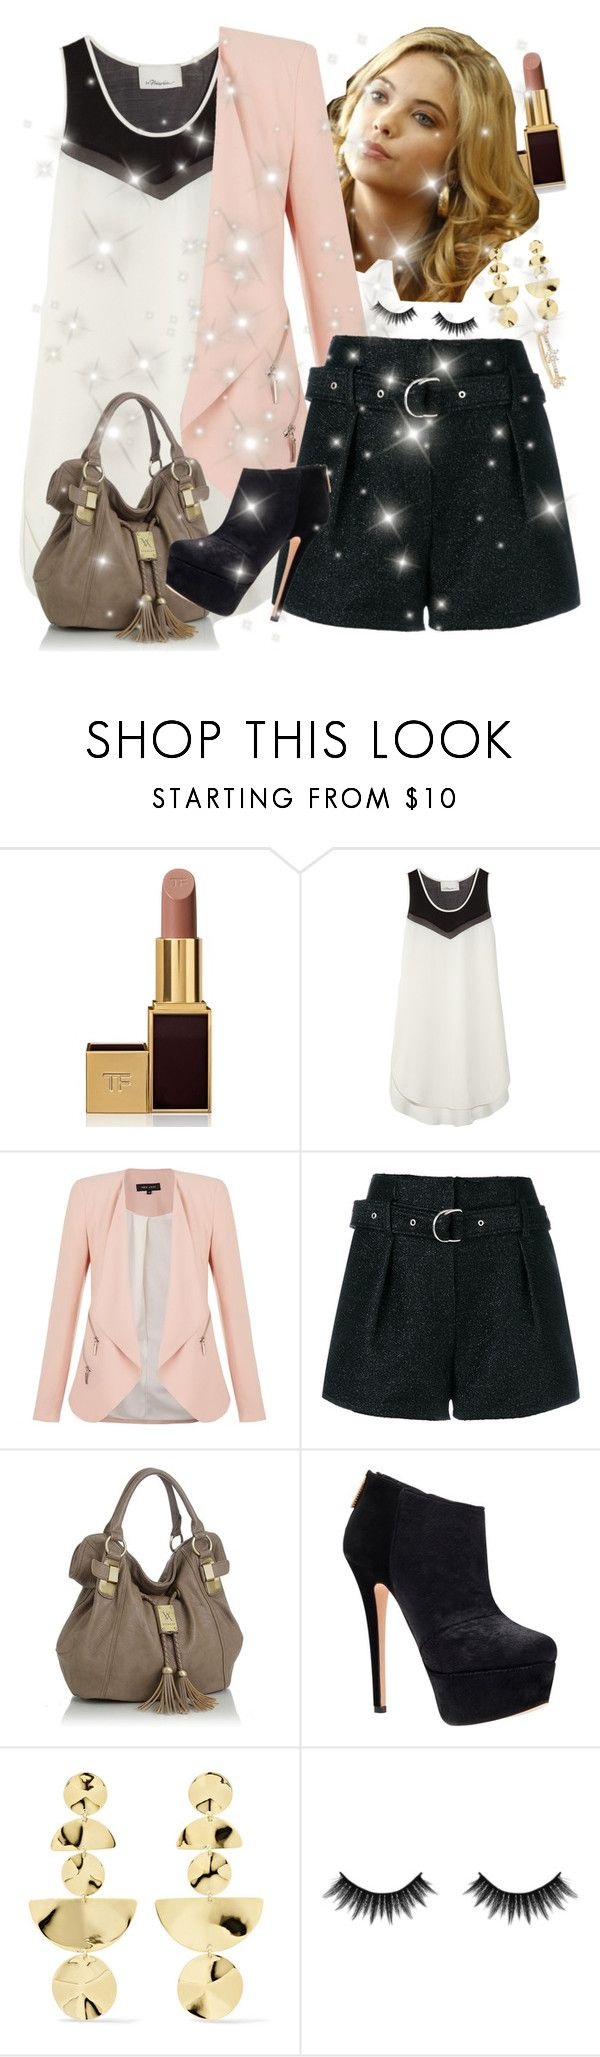 """""""Hanna Marin ♡"""" by faanciella ❤ liked on Polyvore featuring Tom Ford, 3.1 Phillip Lim, IRO, Carvela, Ippolita, Morphe and EF Collection"""